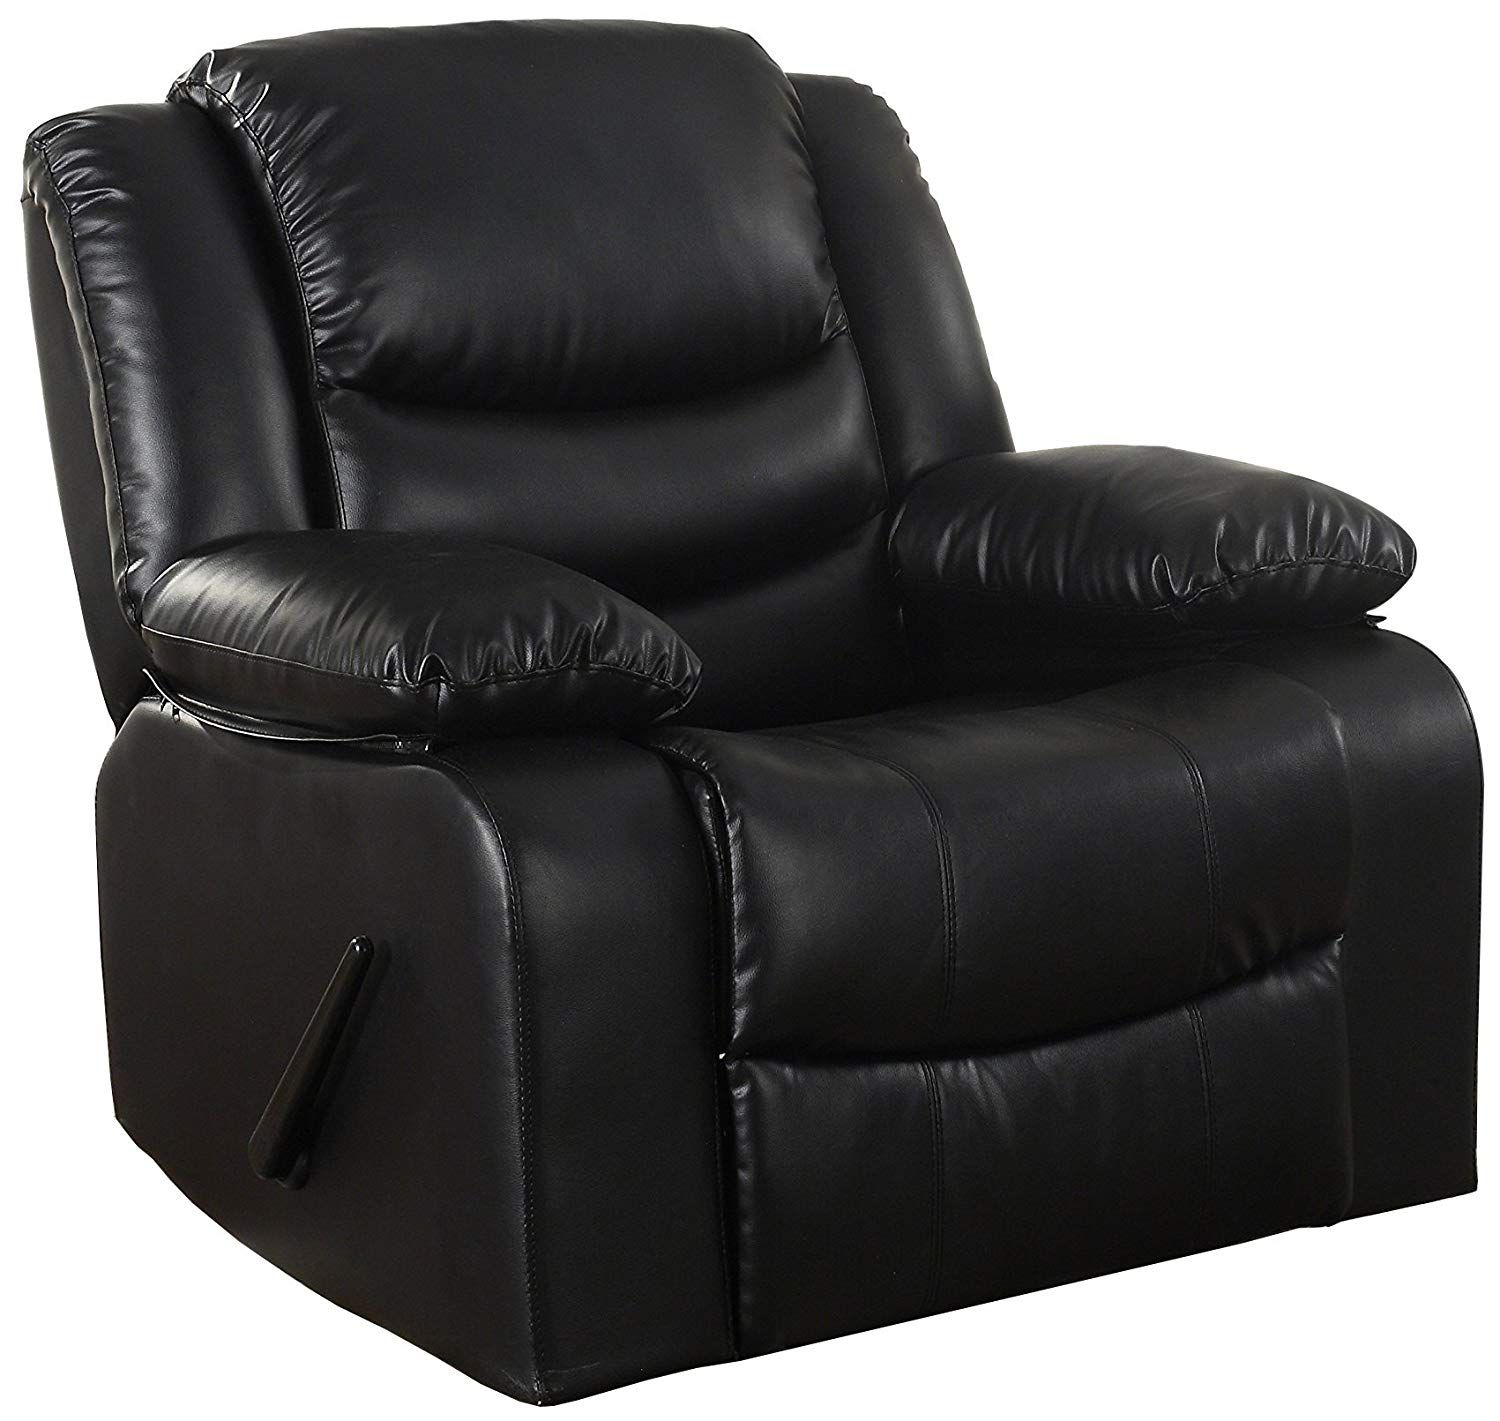 Pin On Best Living Room Chair For Back Pain